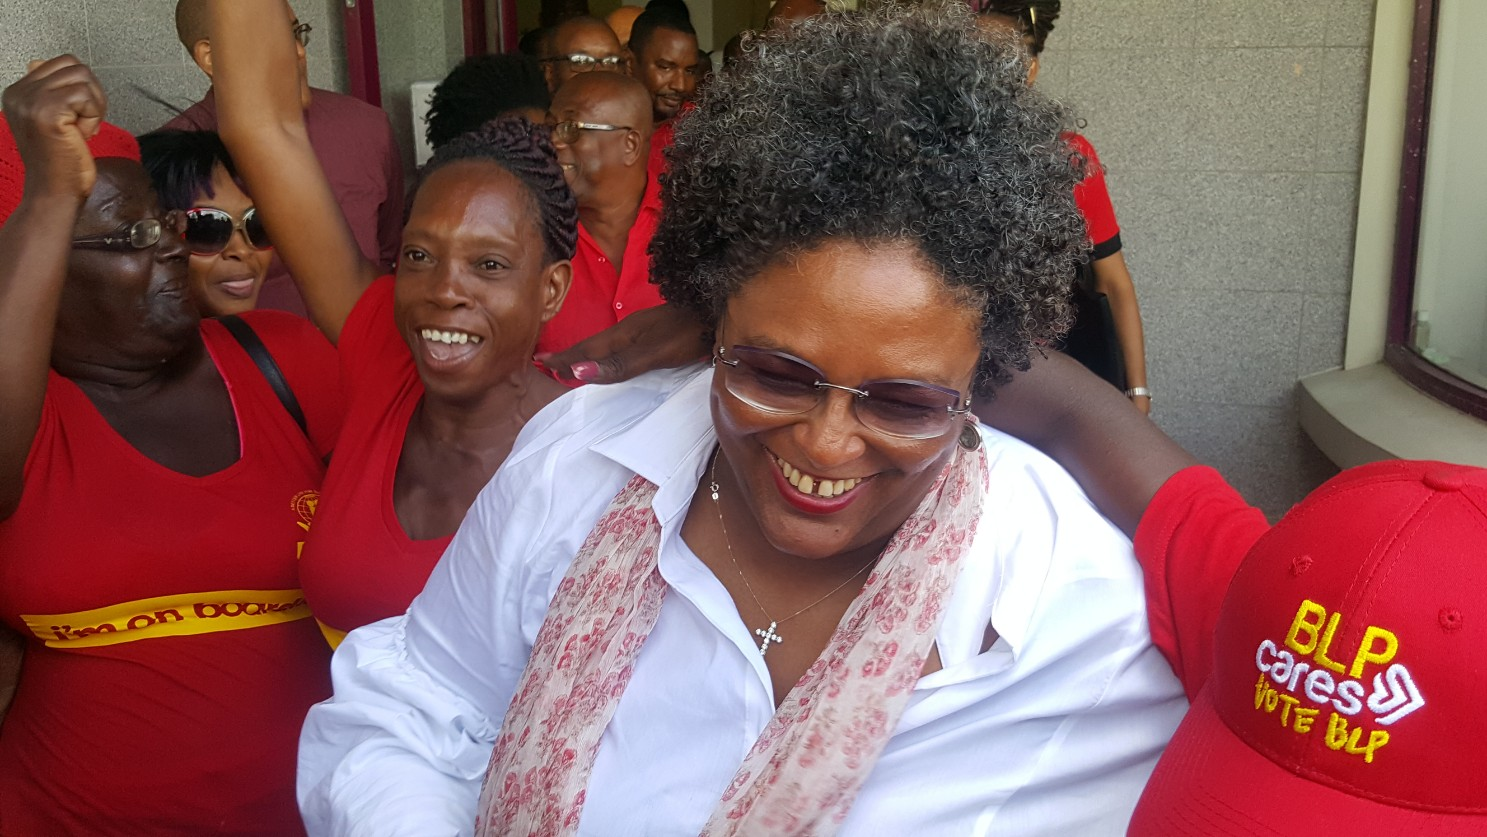 Mia Mottley leading the candidates out into the sea of red shirts after paying their deposits.